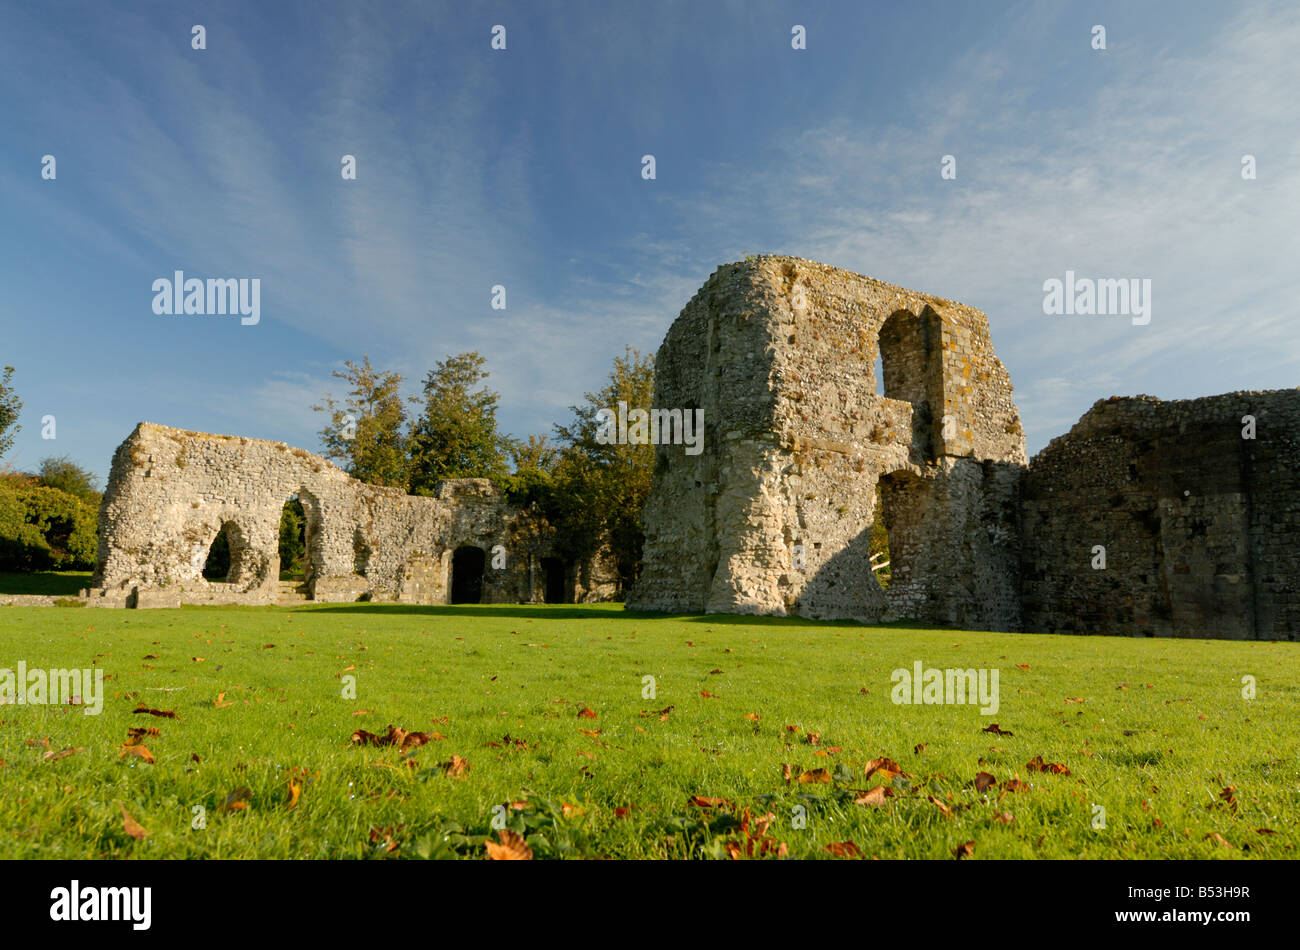 Remains of Cluniac Priory of St Pancras Lewes East Sussex - Stock Image